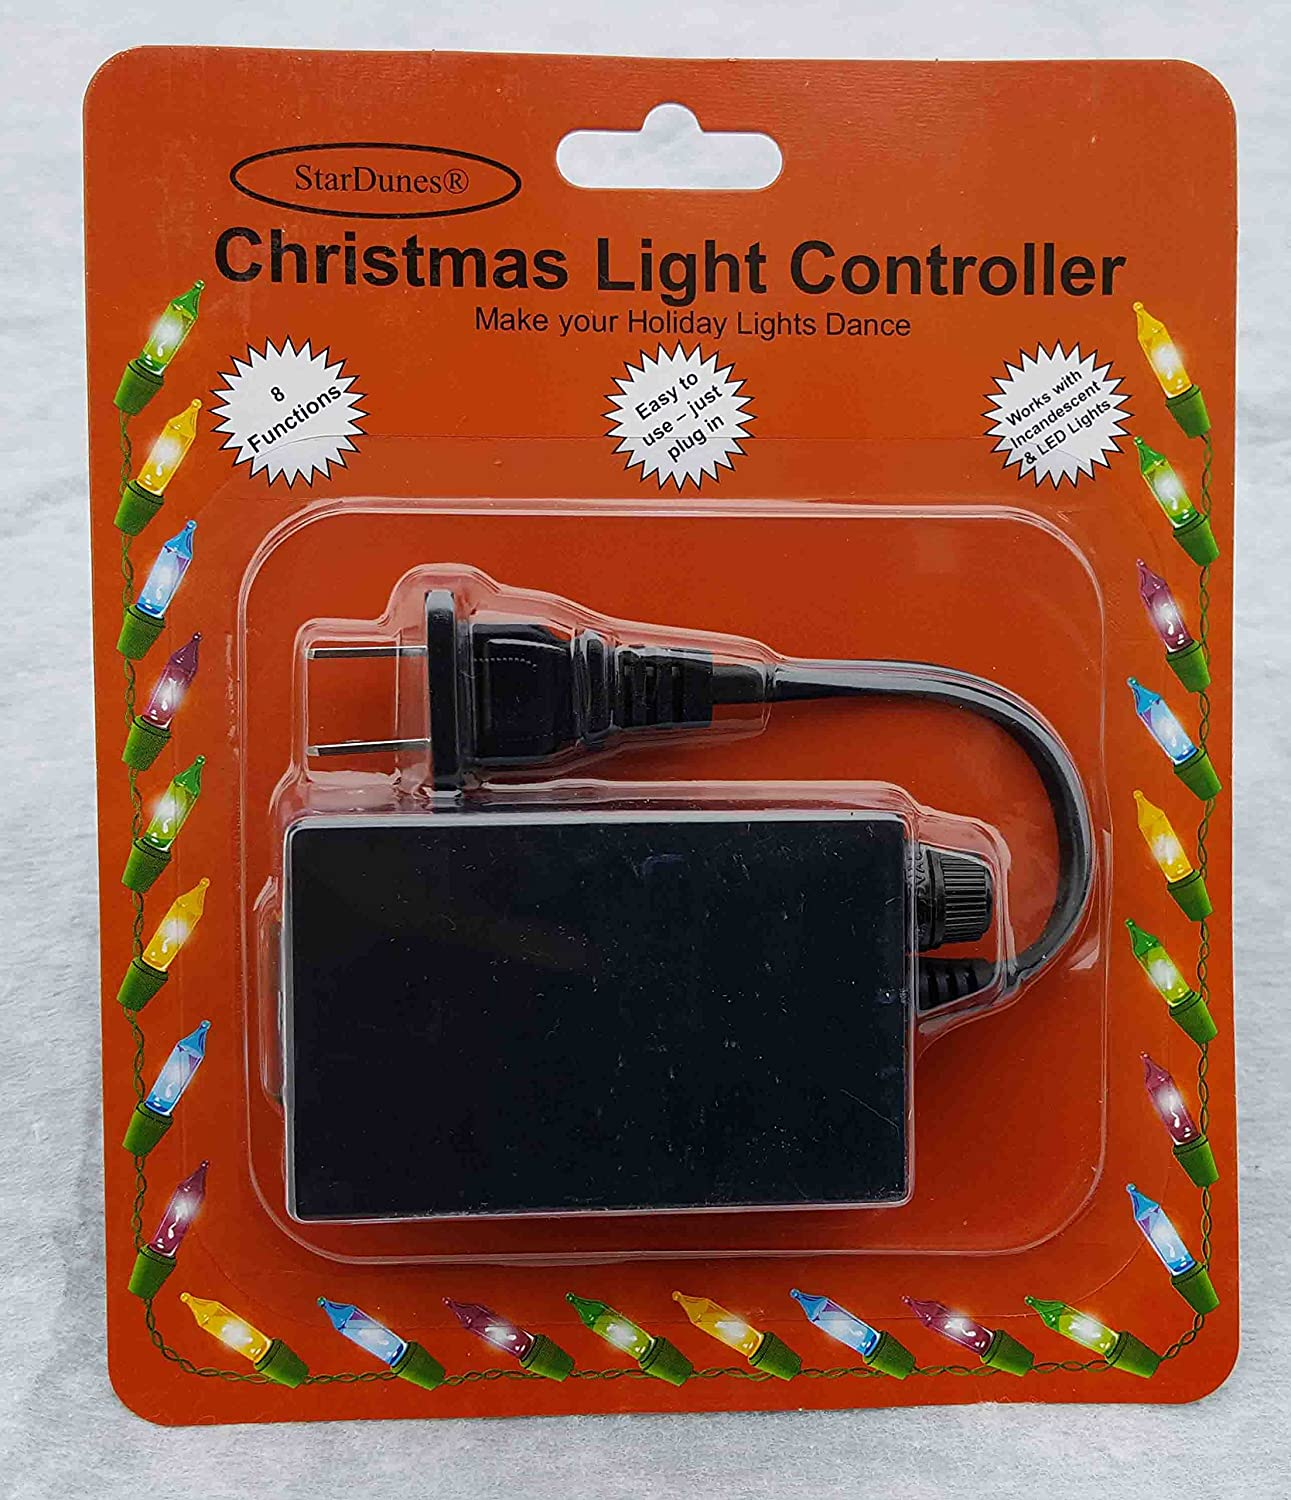 Stardunes Christmas Light Controller Home Kitchen Led Chaser The Leds In This Circuit Produce A Chasing Pattern